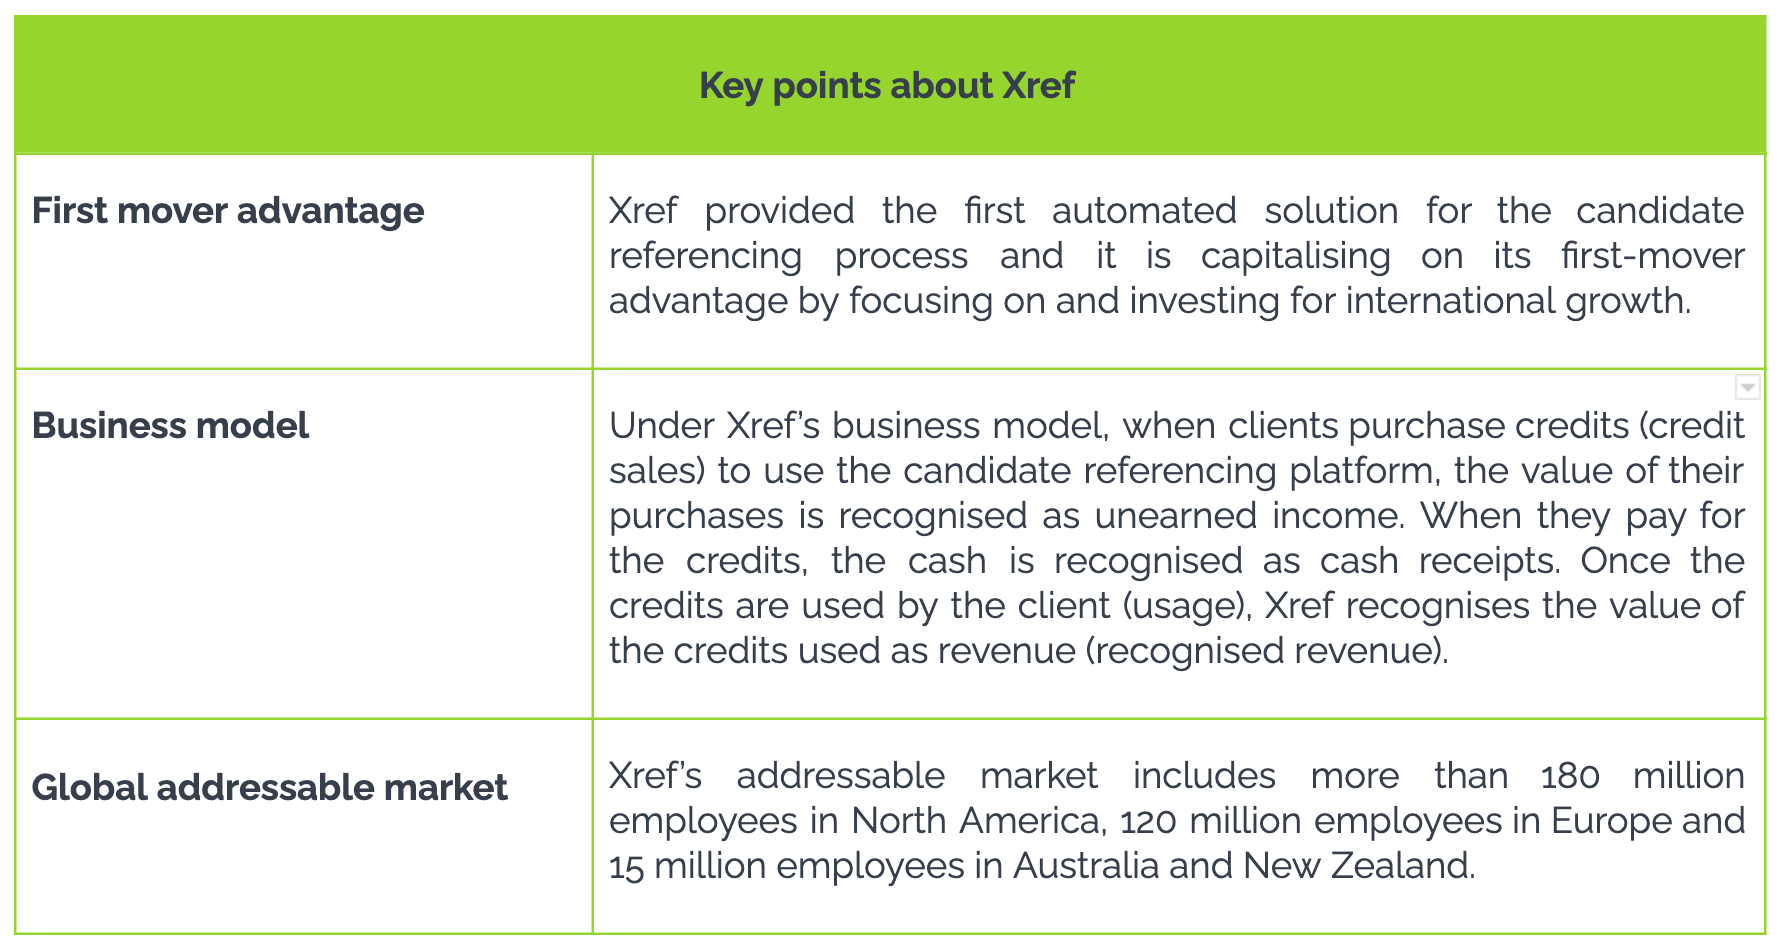 Key point about Xref table